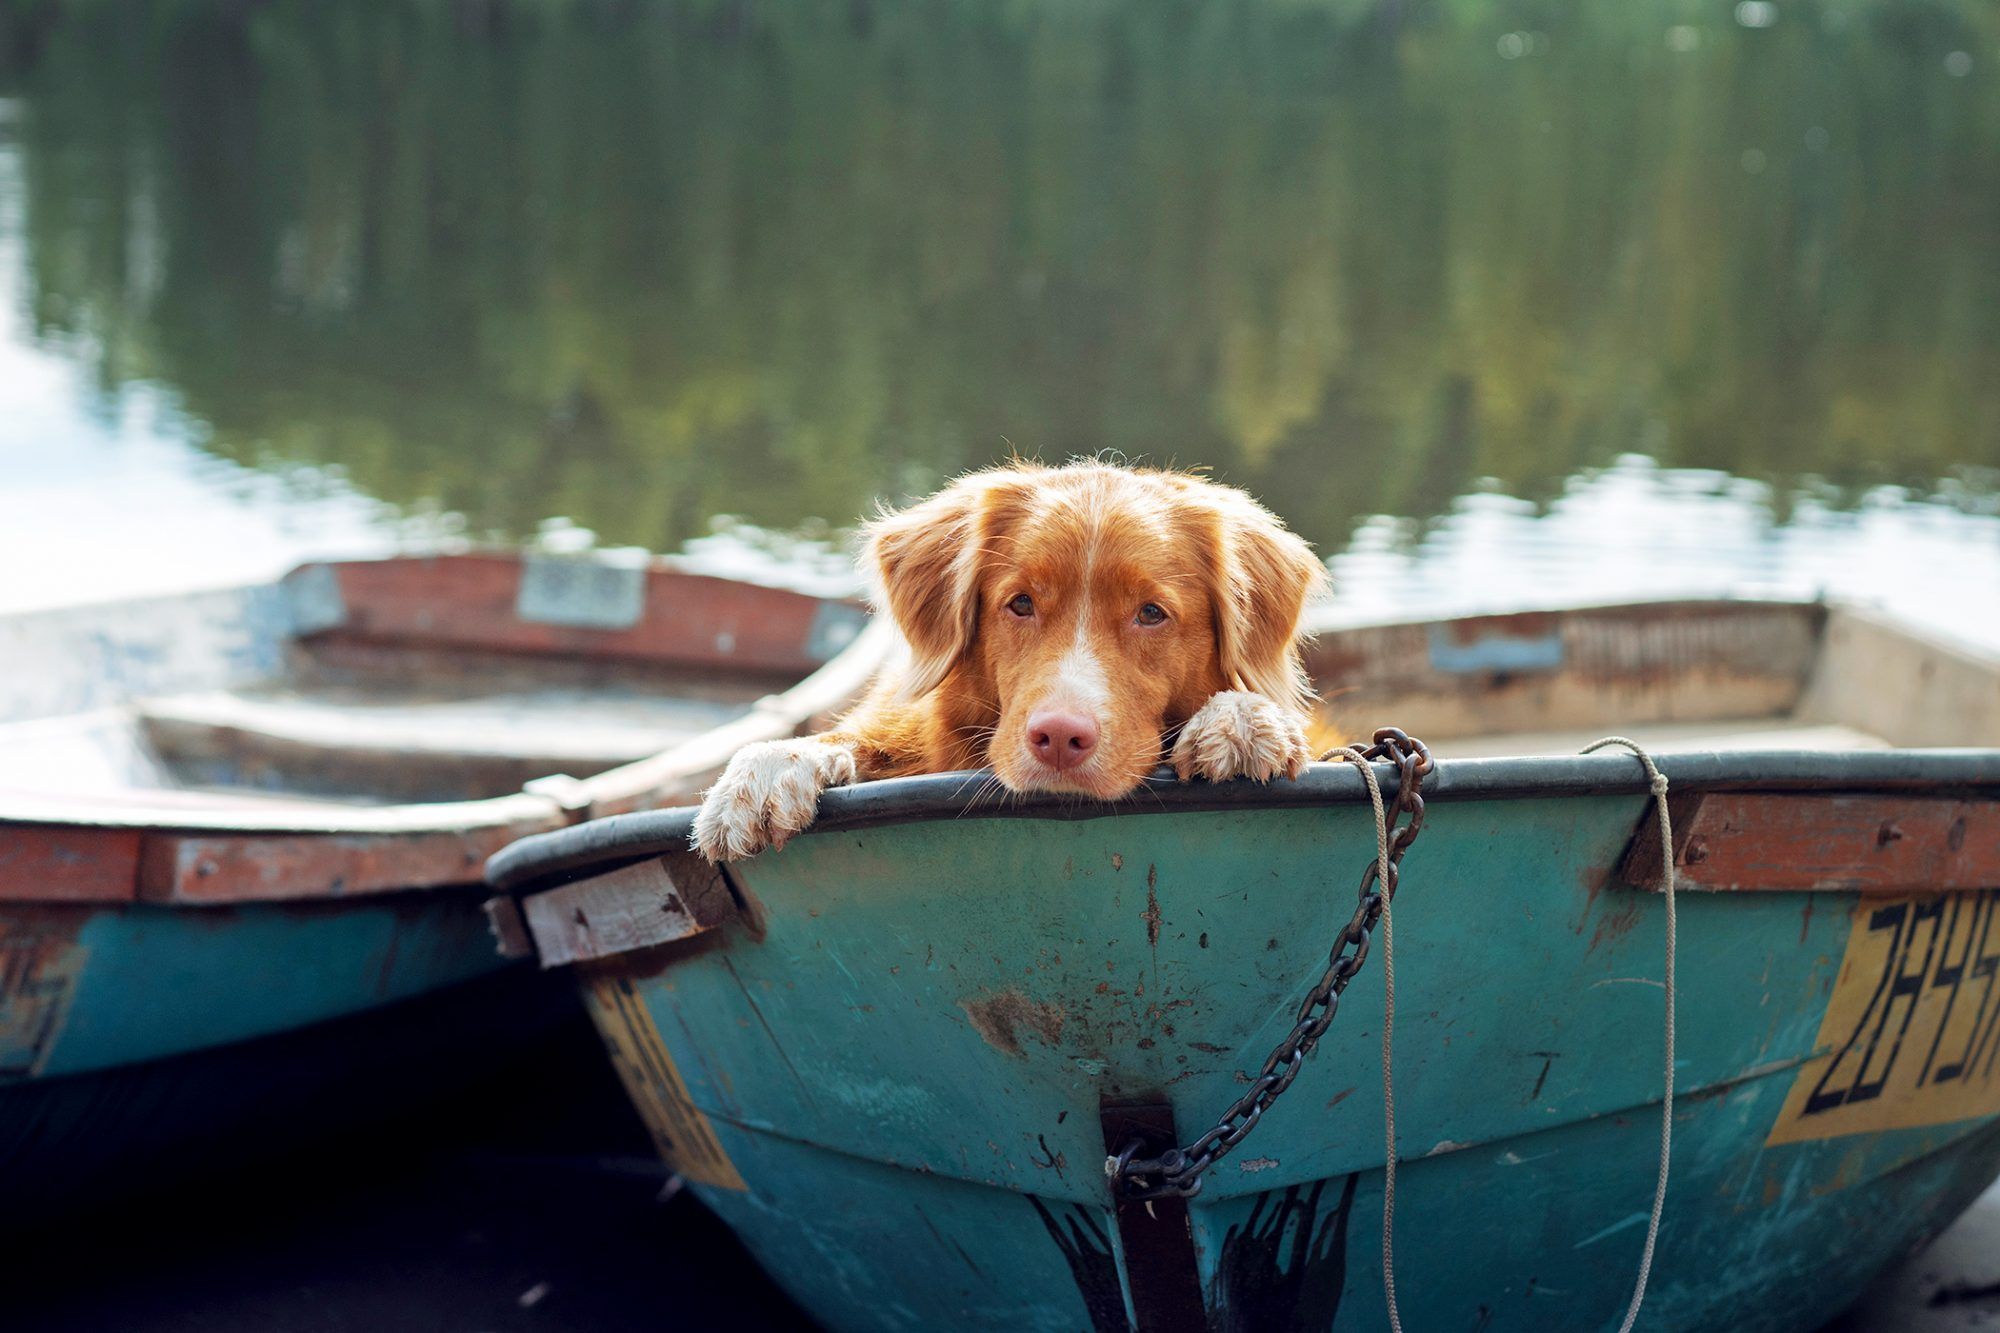 Nova Scotia duck tolling retriever sitting in boat on the water